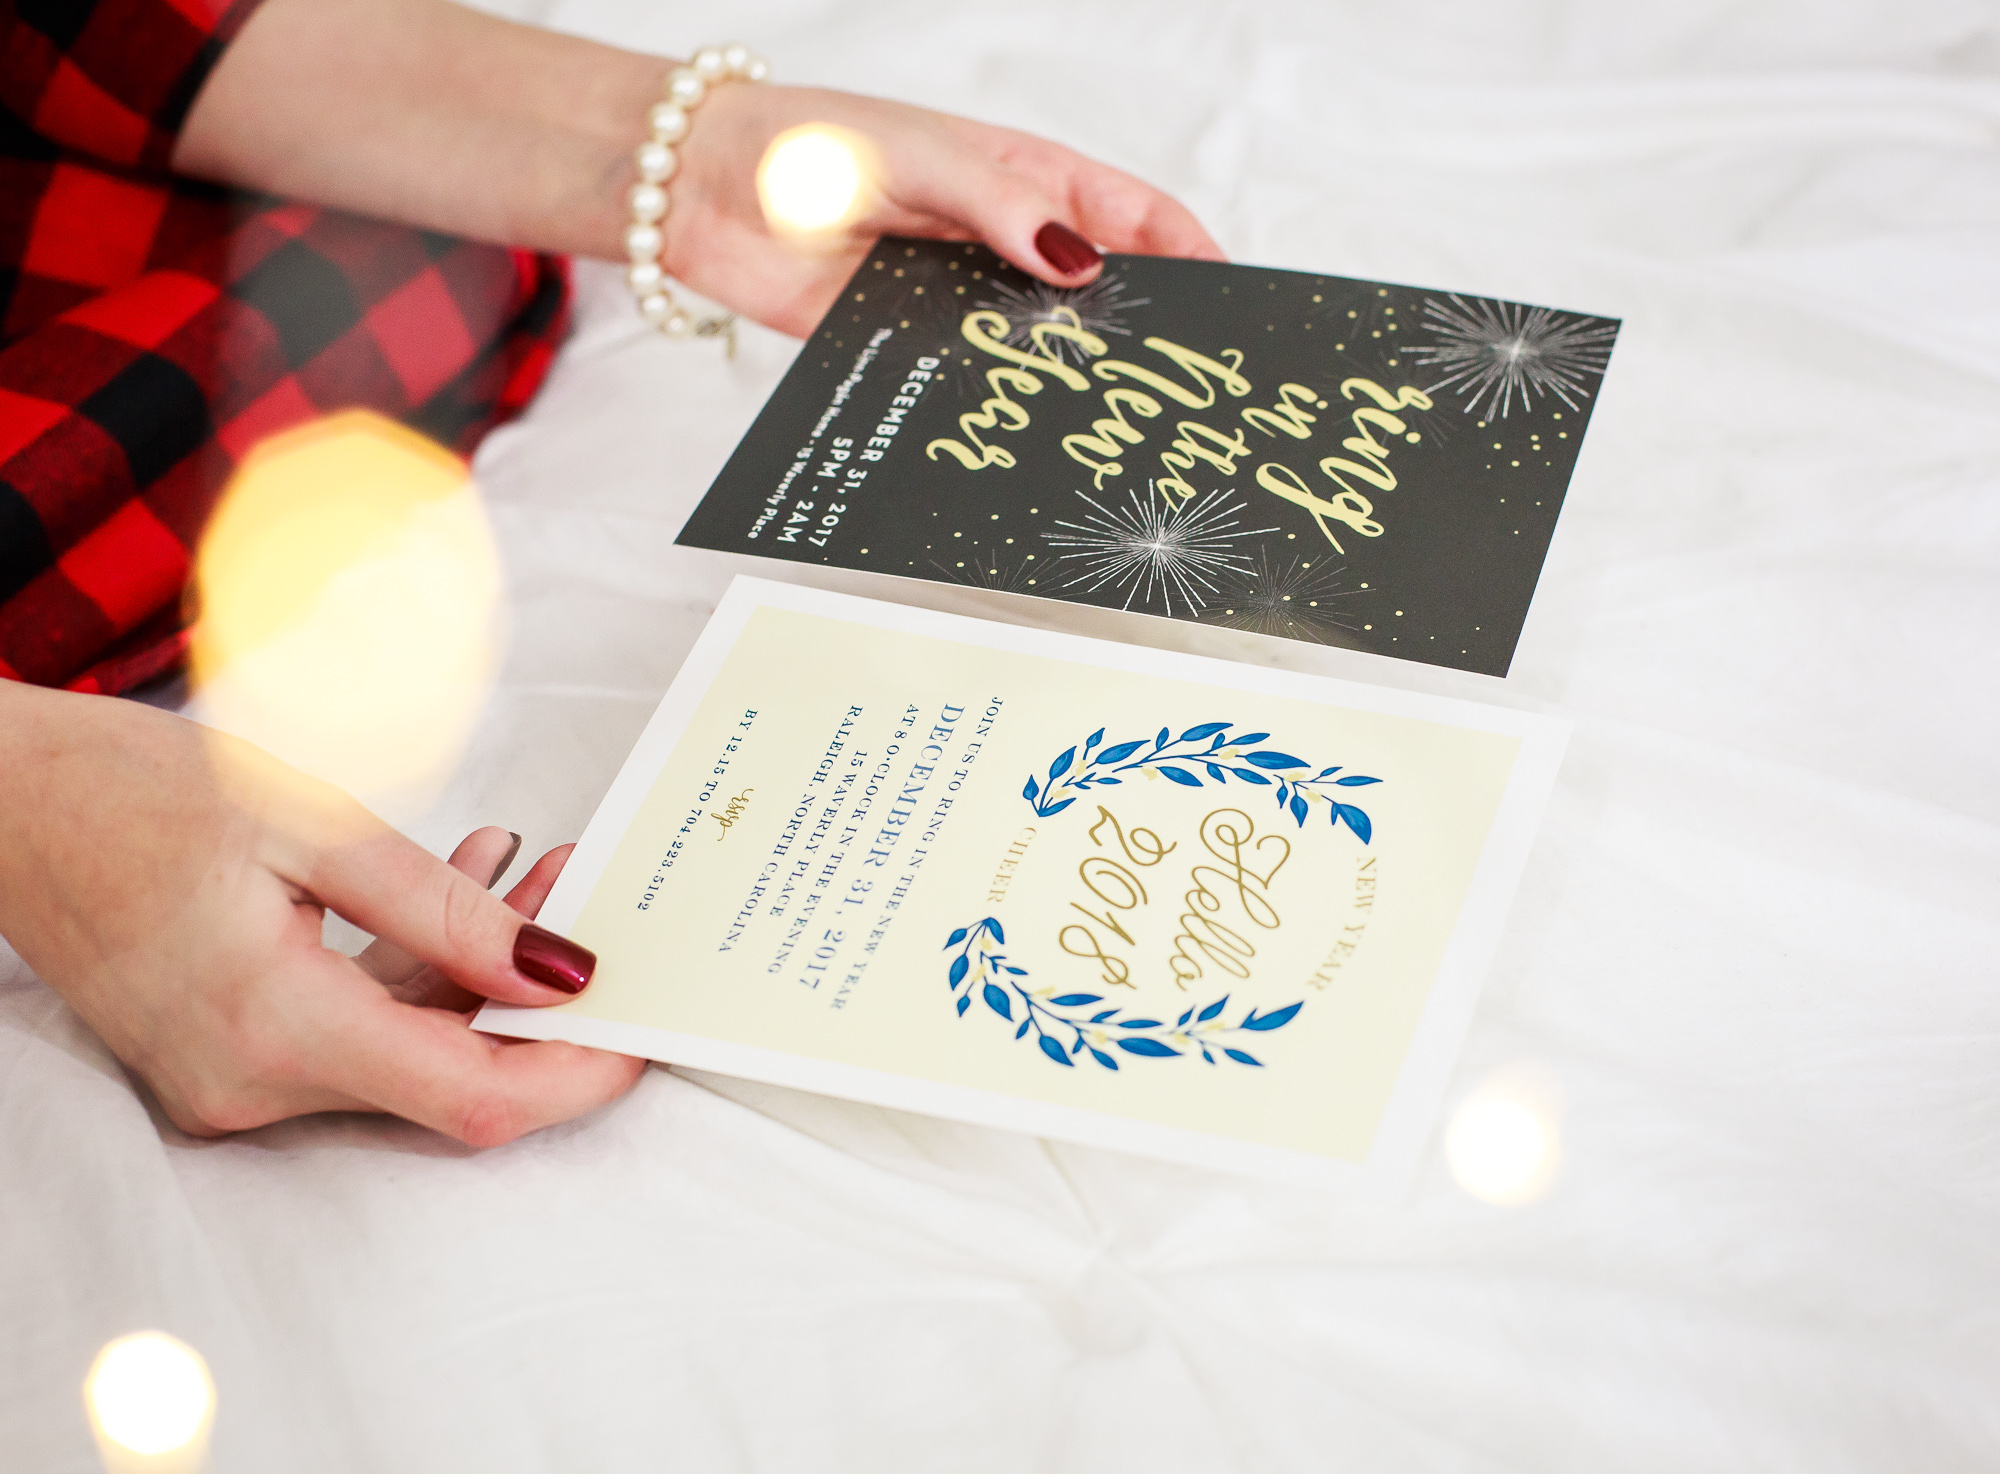 Basic Invite elegant Christmas party and New Years Eve Holiday Party Invitations. Customizable stationary, cards, invitations for any event or holiday. Blog post by fashion and lifestyle blogger Jessica Linn from Linn Style.